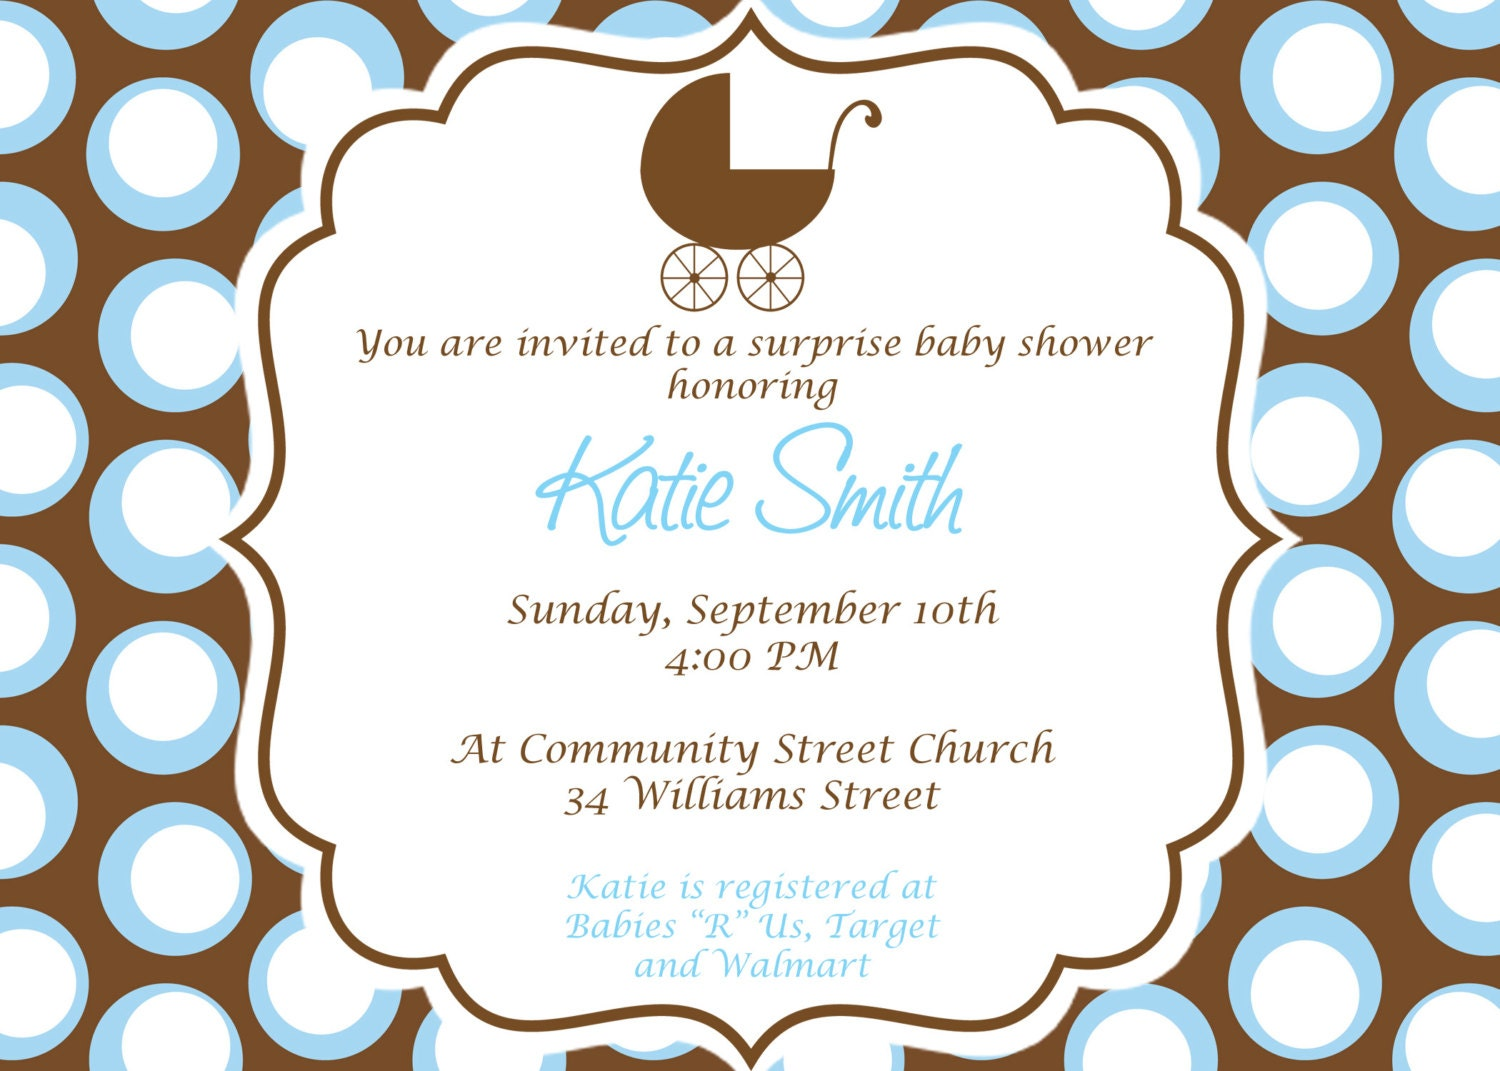 Photo Baby Shower Invitations is one of our best ideas you might choose for invitation design